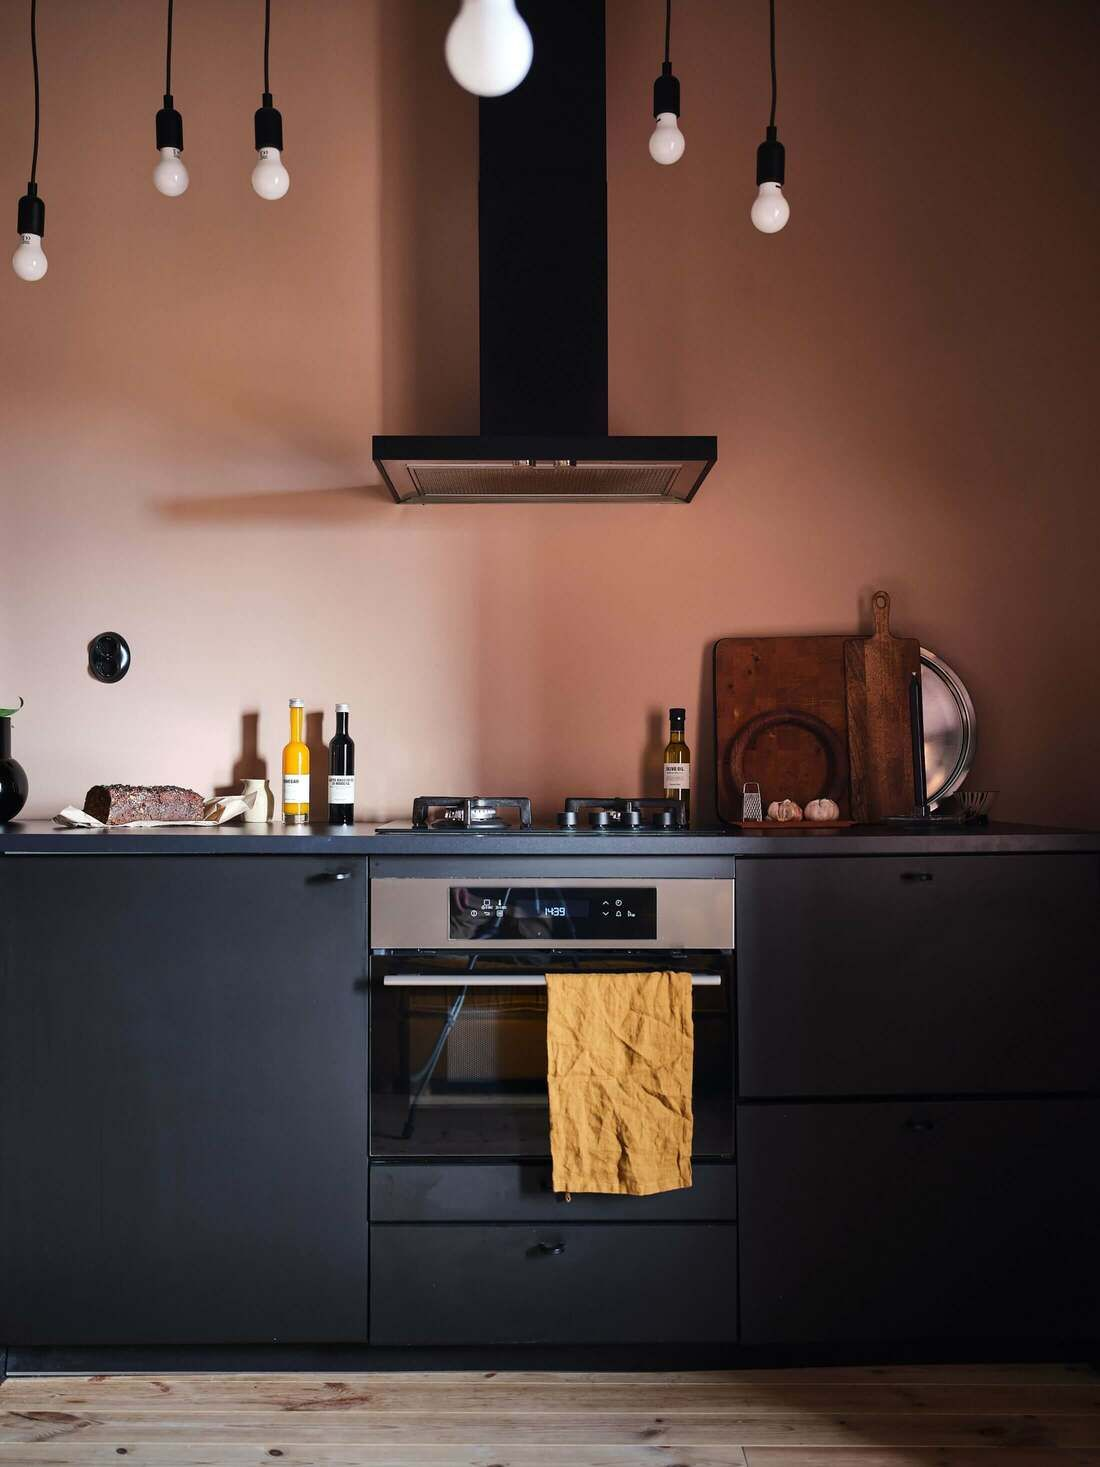 Blush Peach And Savannah Sunset Coloured Family Home Paul Paula In 2020 Black Kitchens Peach Kitchen Kitchen Wall Colors